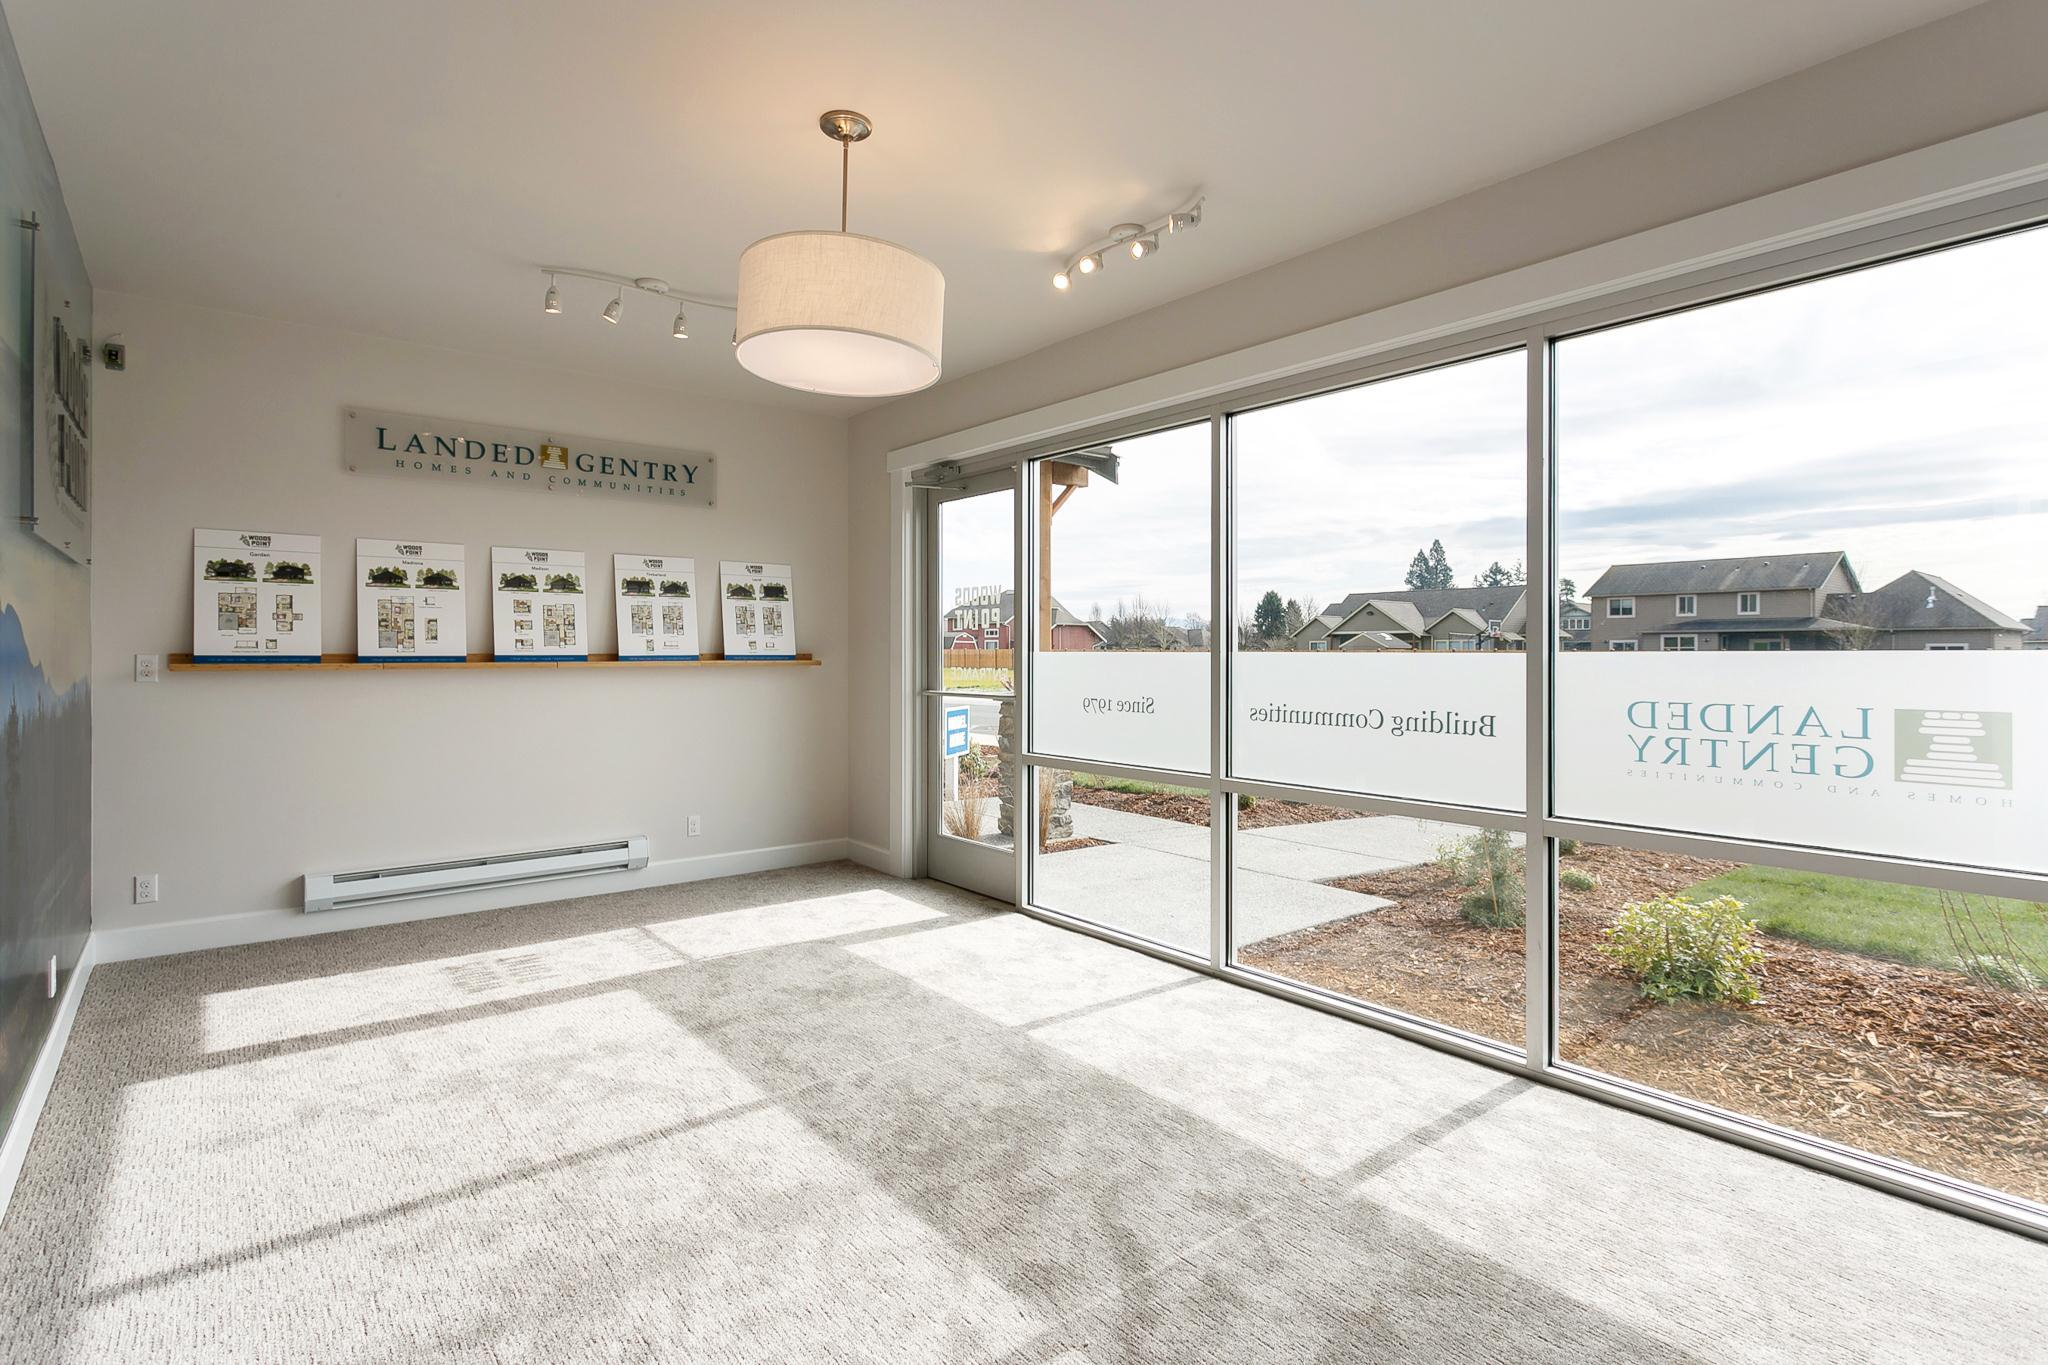 'Woods Point' by Landed Gentry Homes in Bellingham